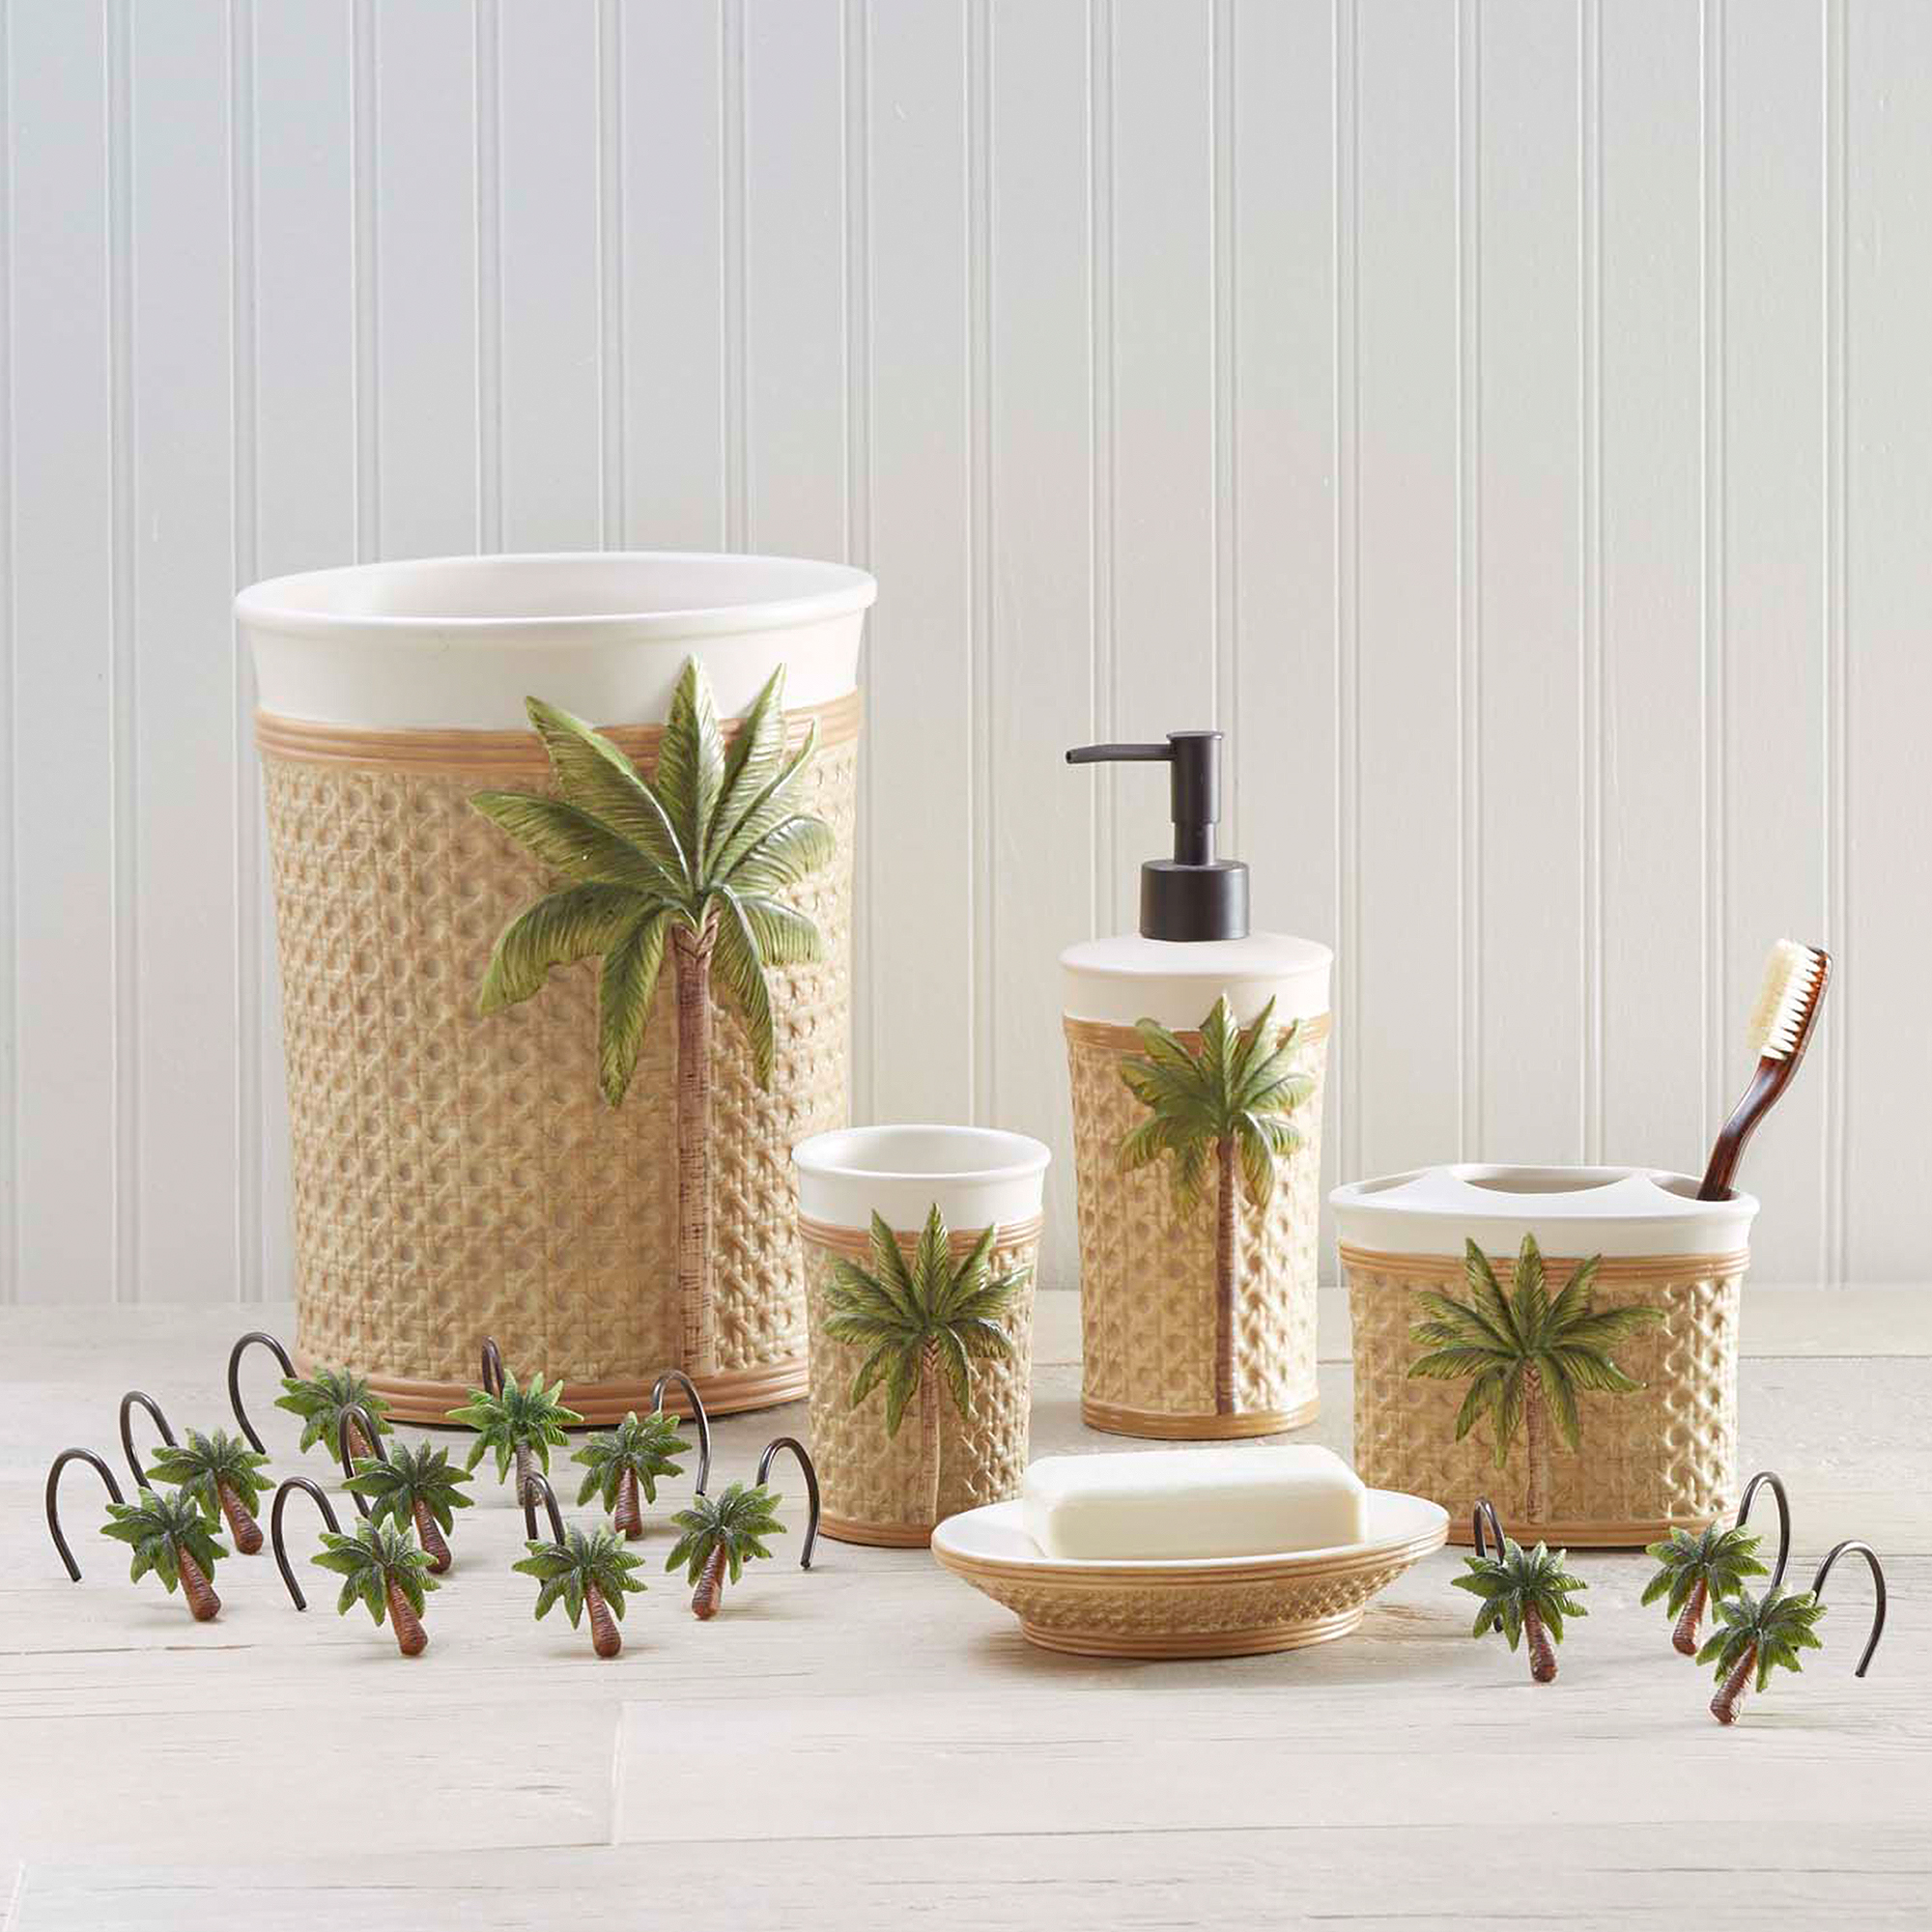 Bathroom Accessories Pics bathroom accessories - walmart